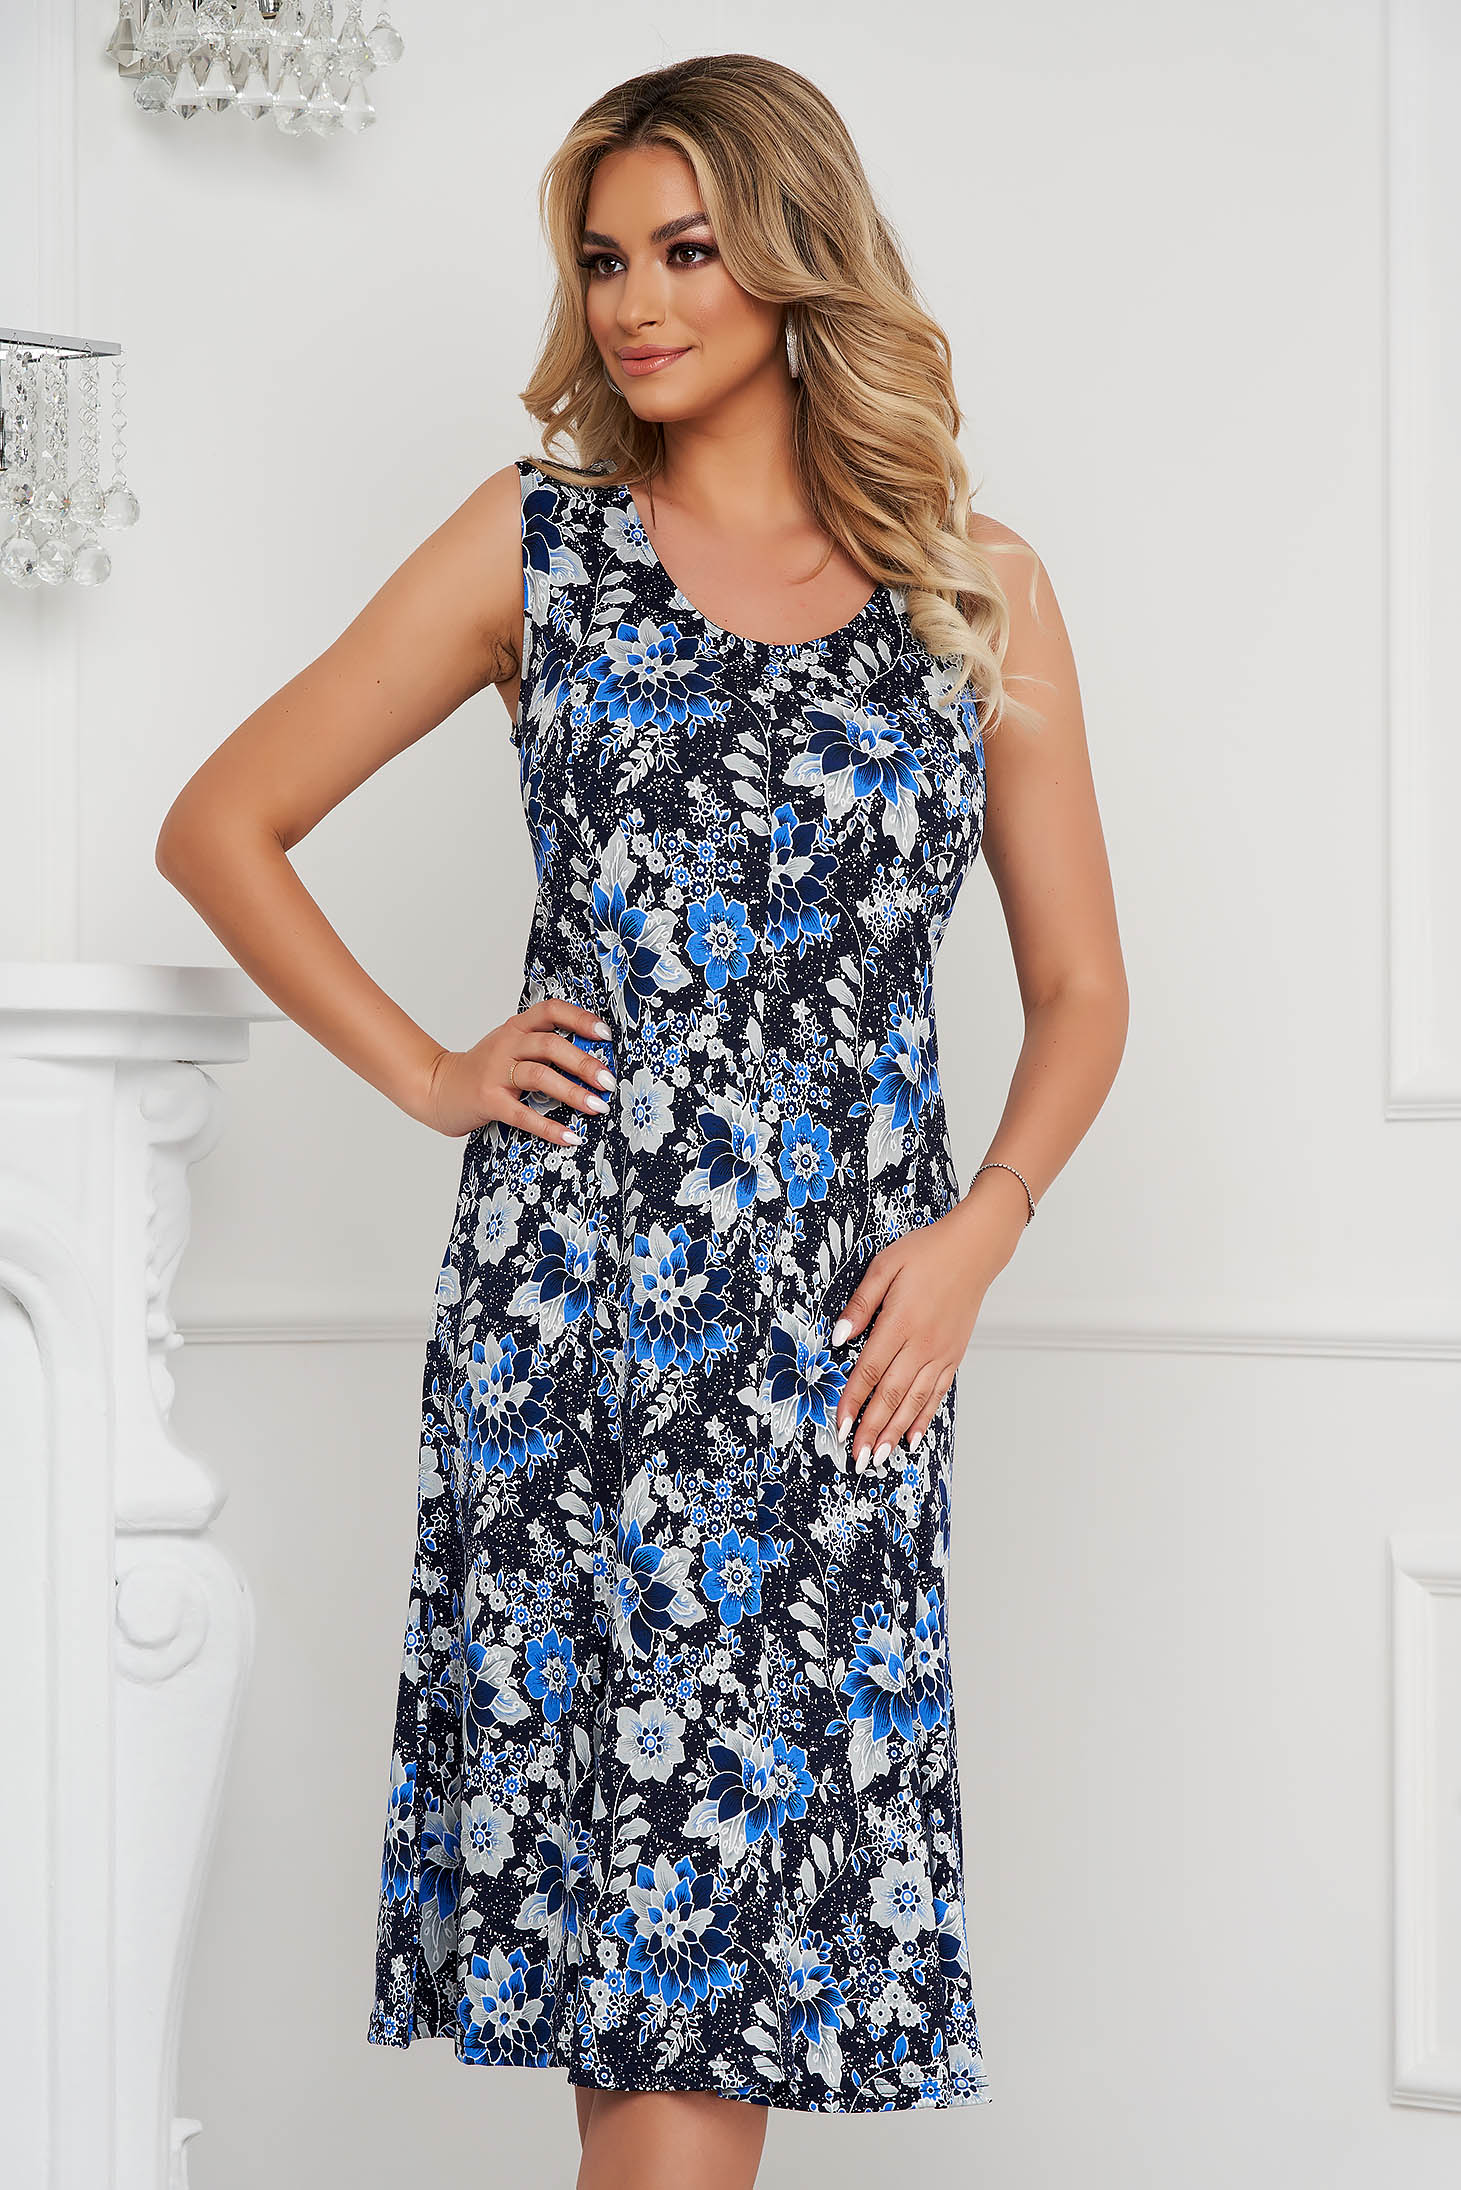 Dress midi a-line sleeveless with rounded cleavage